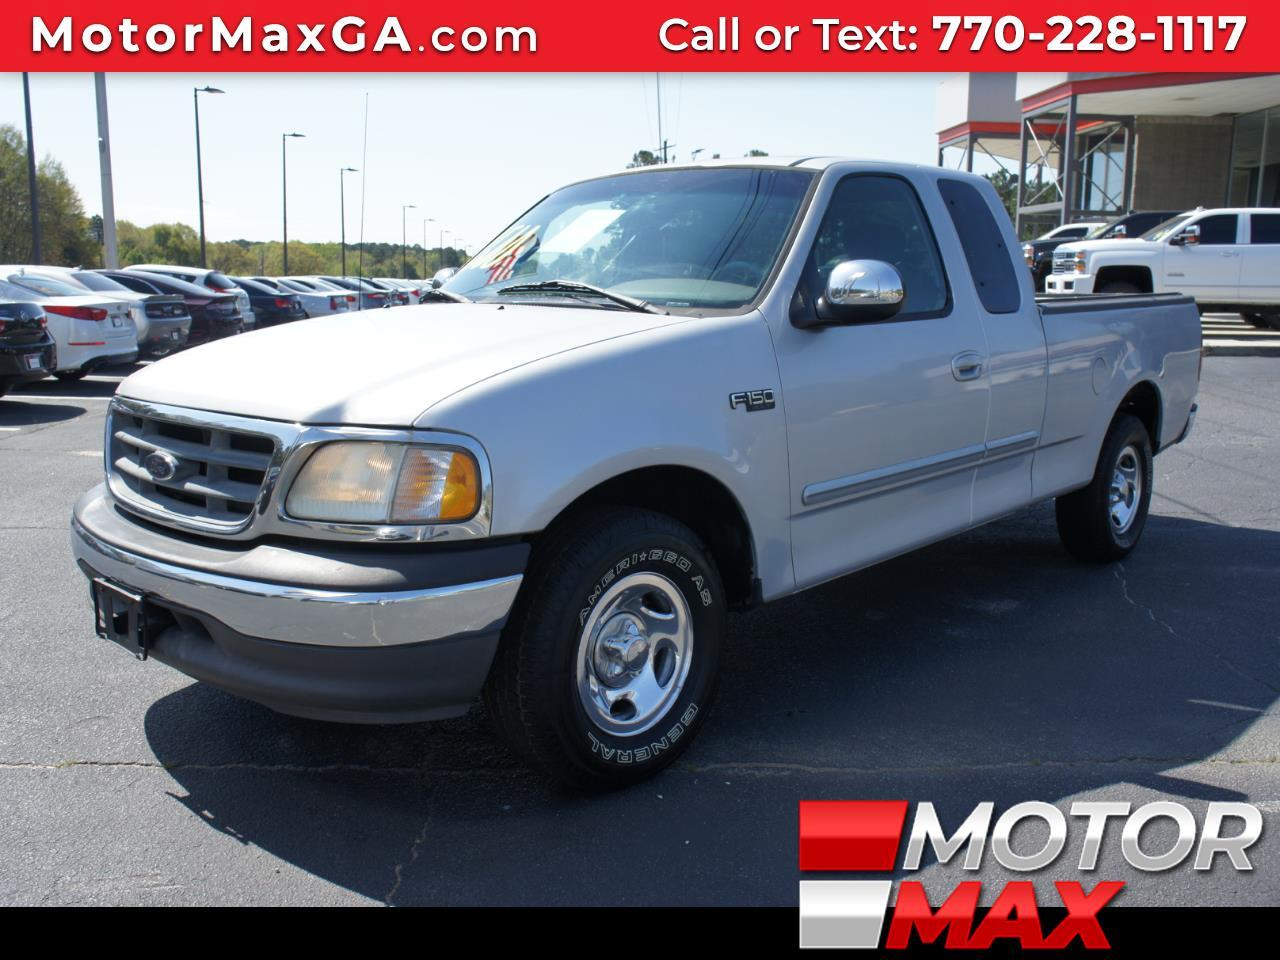 2002 Ford F-150 XL SuperCab 2WD